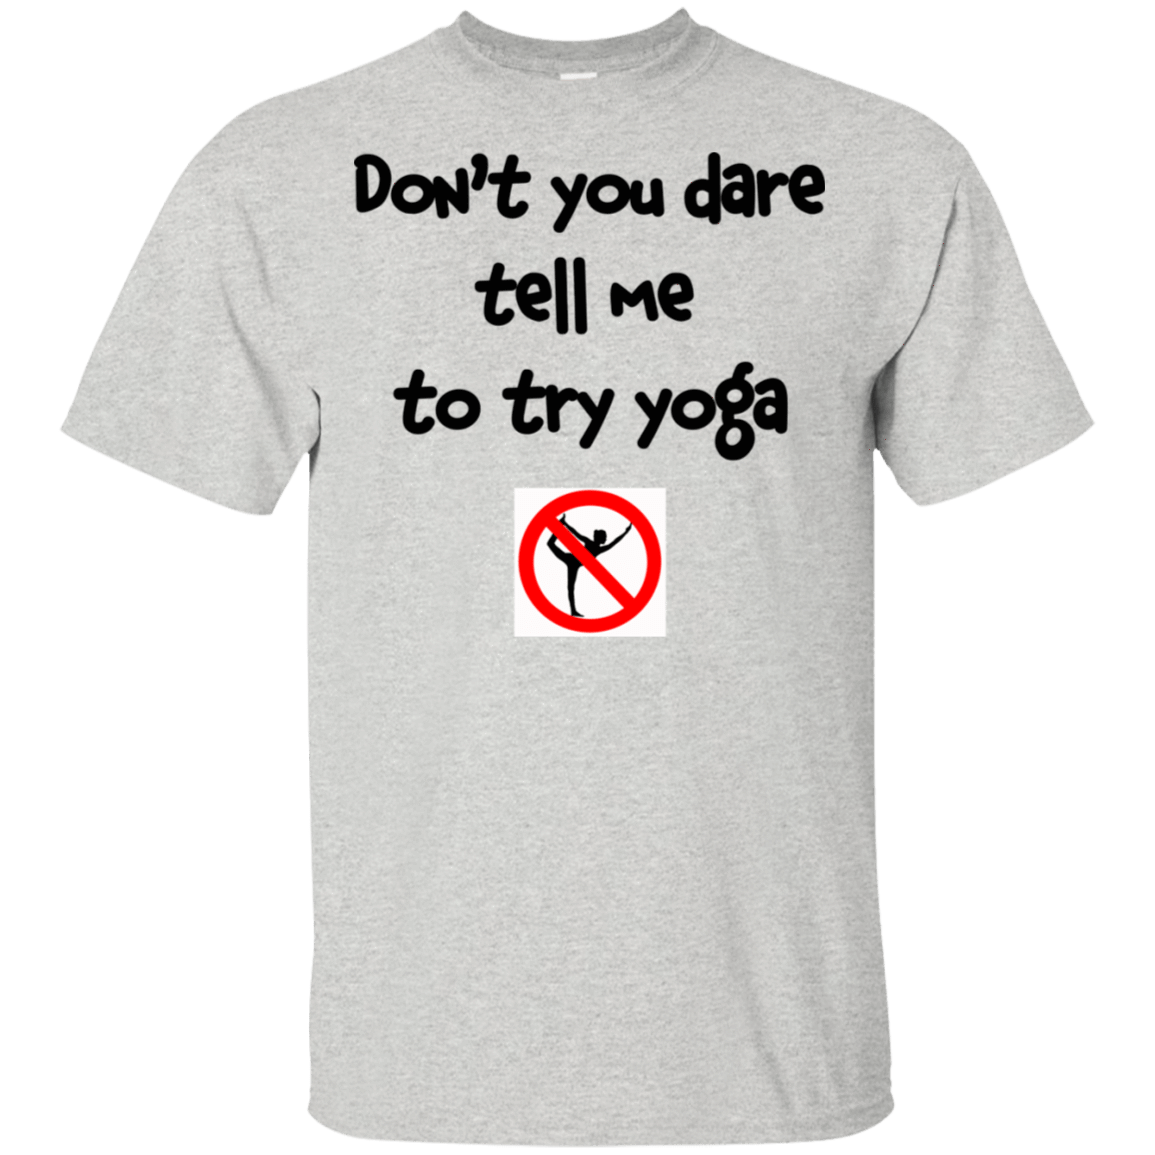 Don't You Dare Tell Me To Try Yoga 22-2475-73056938-12568 - Tee Ript